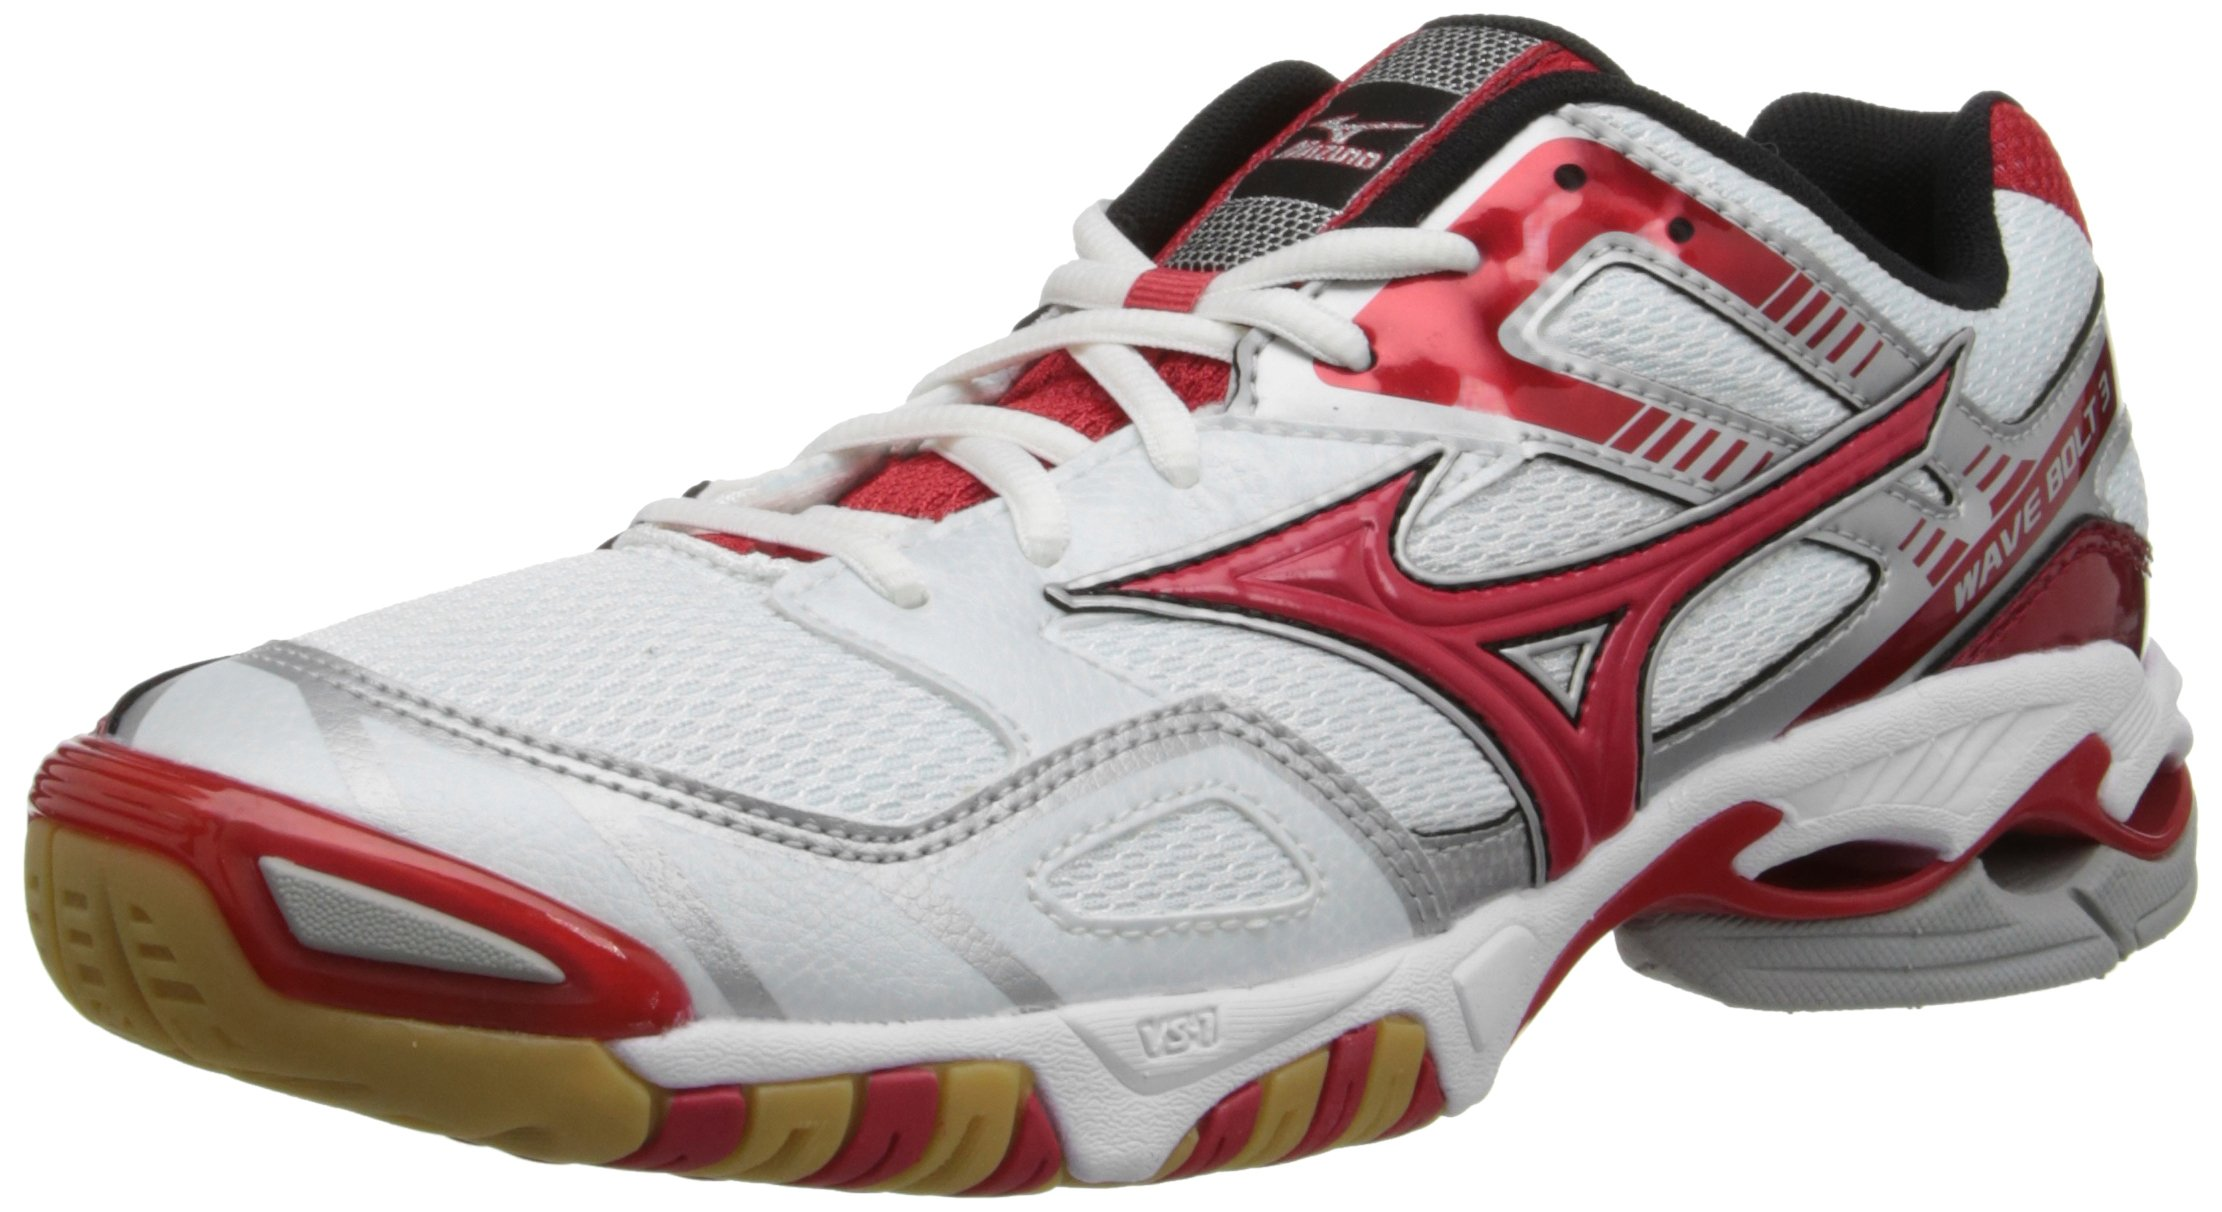 Mizuno Women's Wave Bolt 3 Volley Ball Shoe,White/Red,11 M US by Mizuno